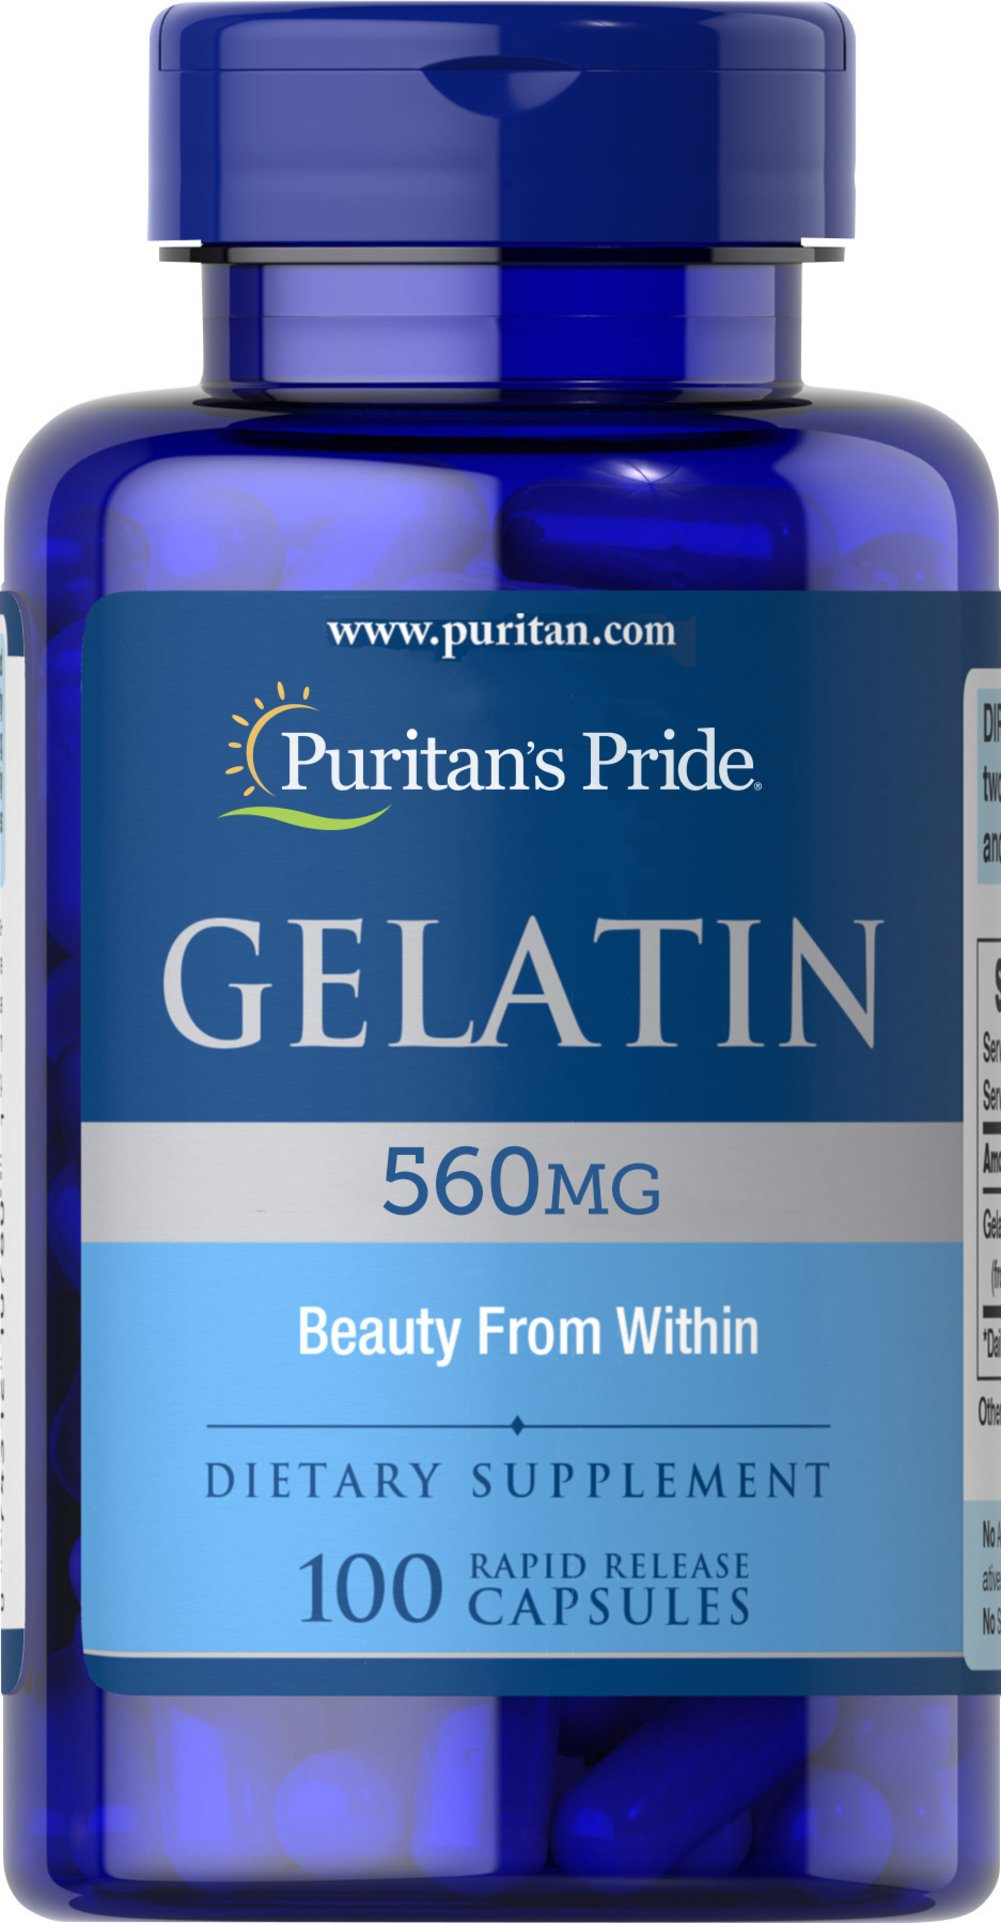 Gelatin 650 mg <p>Supports the Beauty of Nails**</p><p>An active lifestyle, harsh detergents, on-the-run nutrition - all can have an effect on the health of your nails.   Gelatin is one of the raw materials for collagen, the building block for strong, healthy nails.** As a supplement, Gelatin supports the beauty of your nails.**</p> 100 Capsules 650 mg $11.99